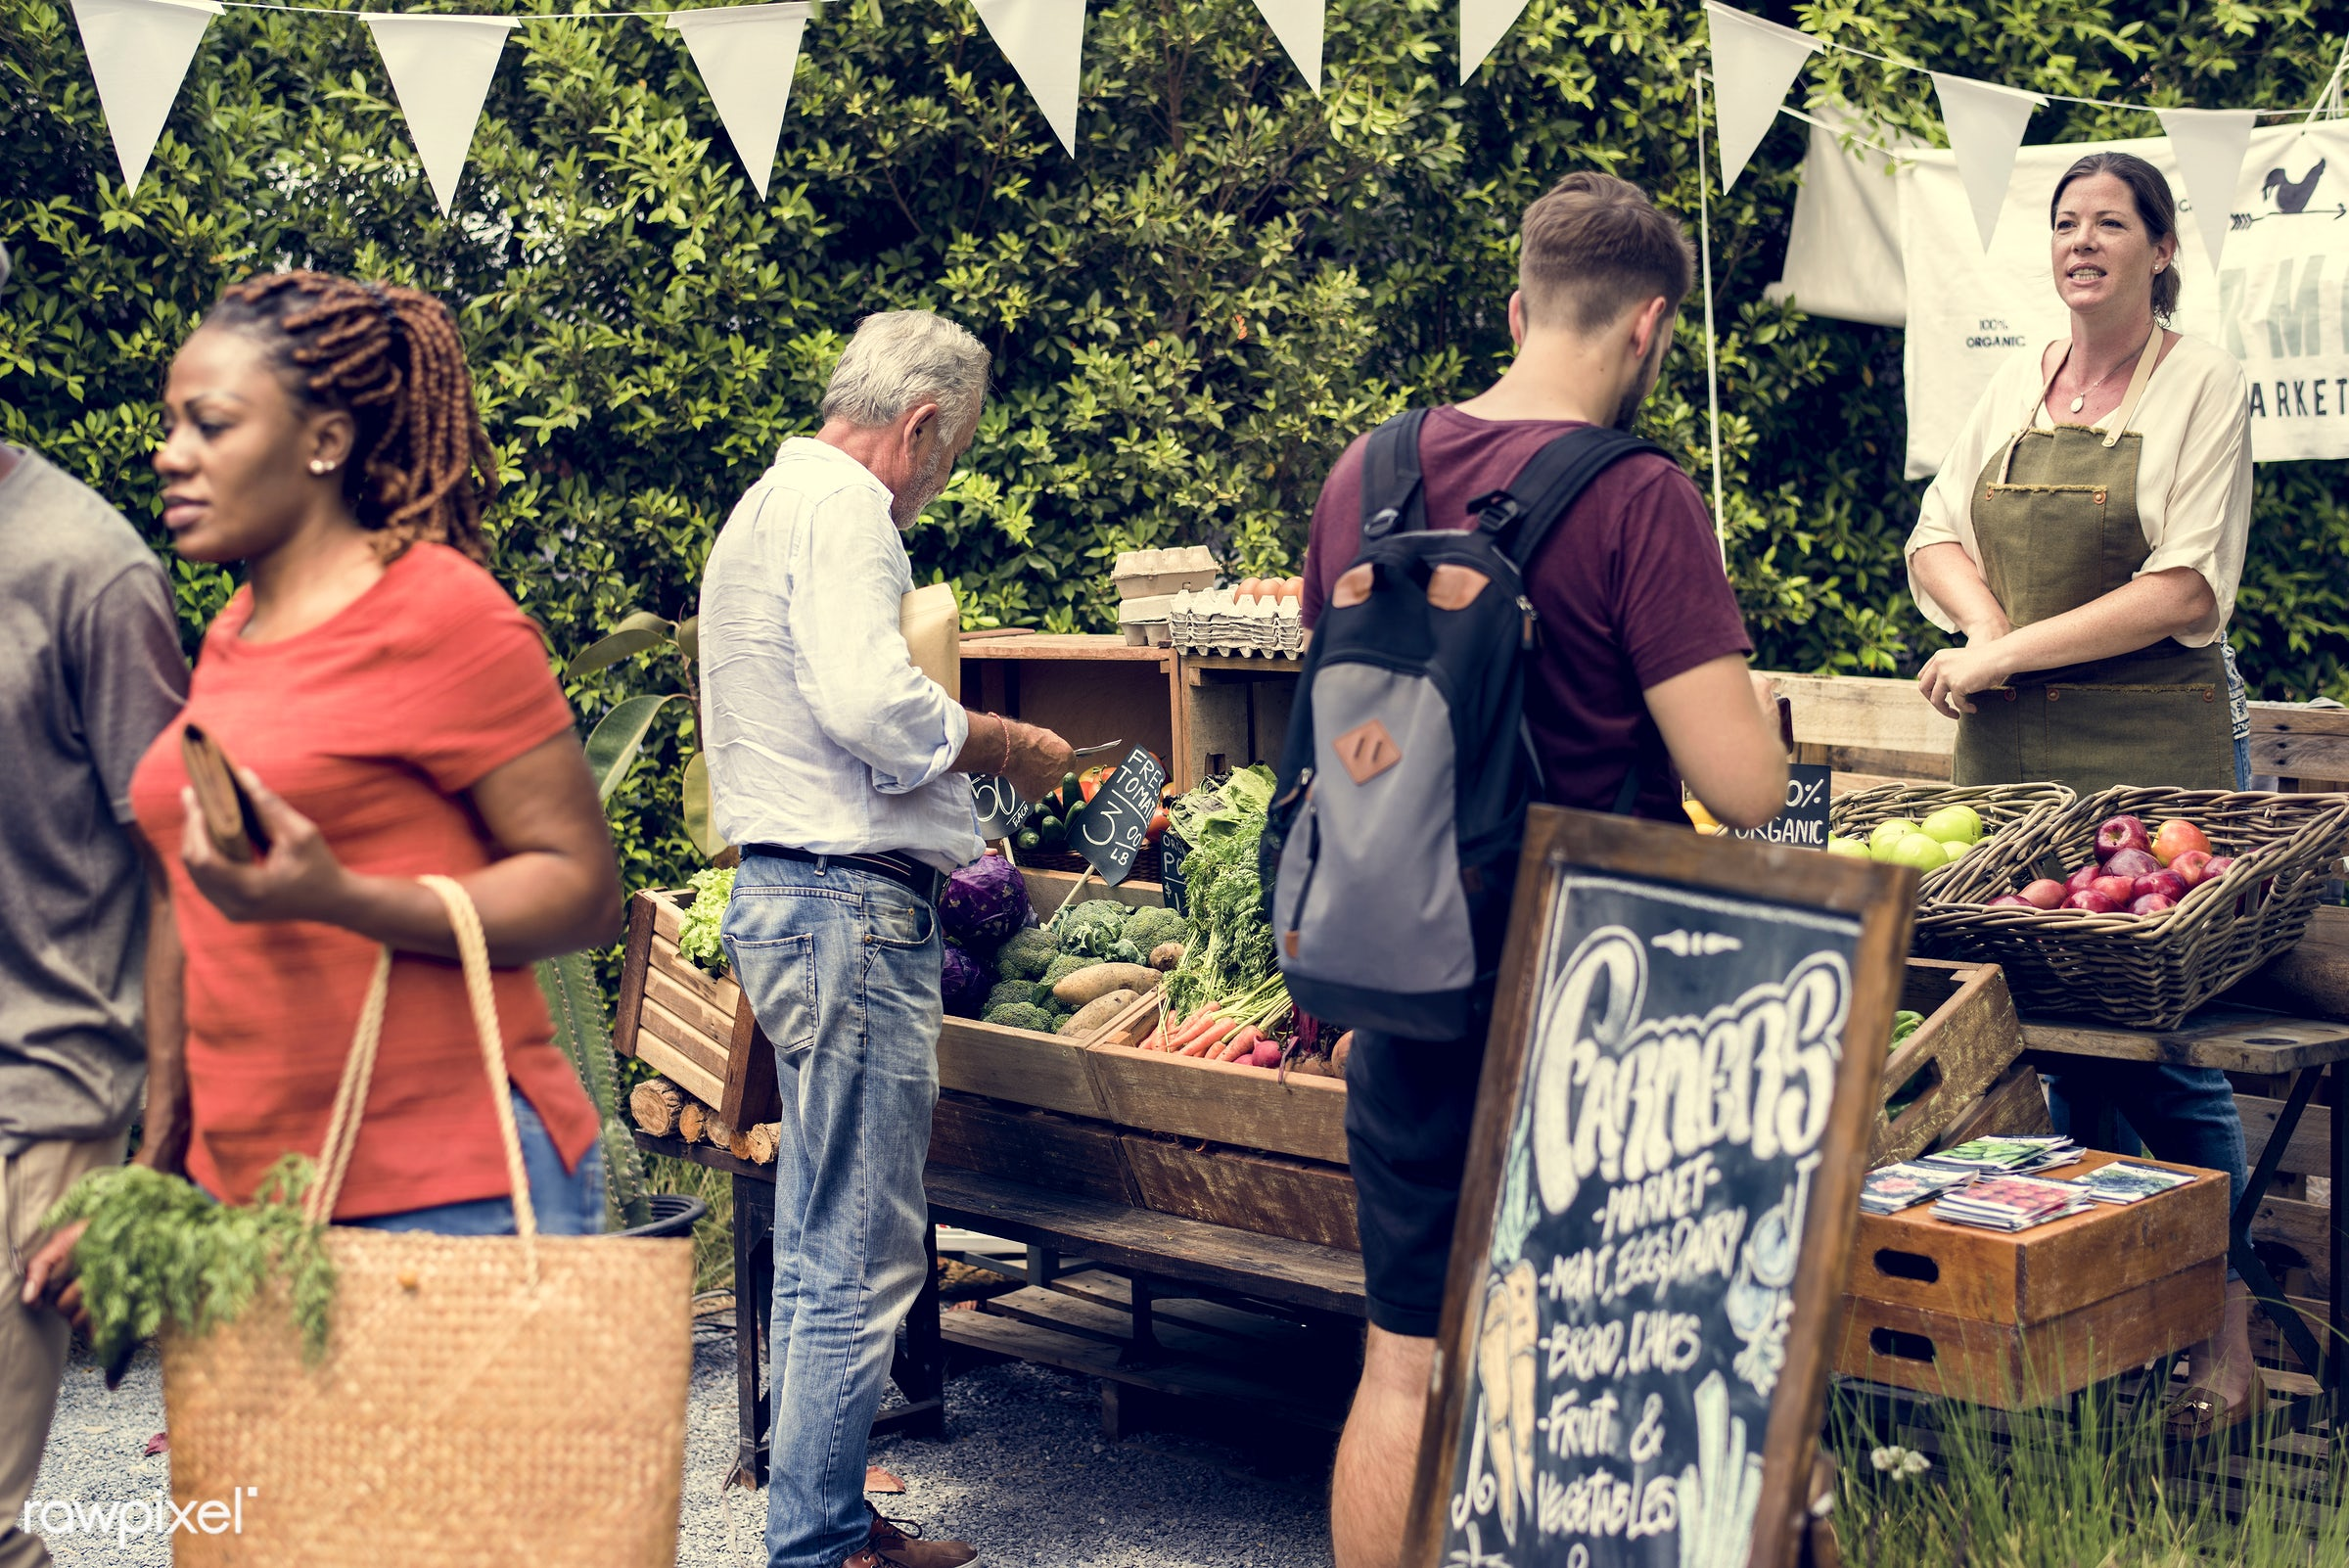 shop, person, stall, buy, customer, people, farmer, woman, choosing, choose, consumers, display, sign, nutrition, market,...